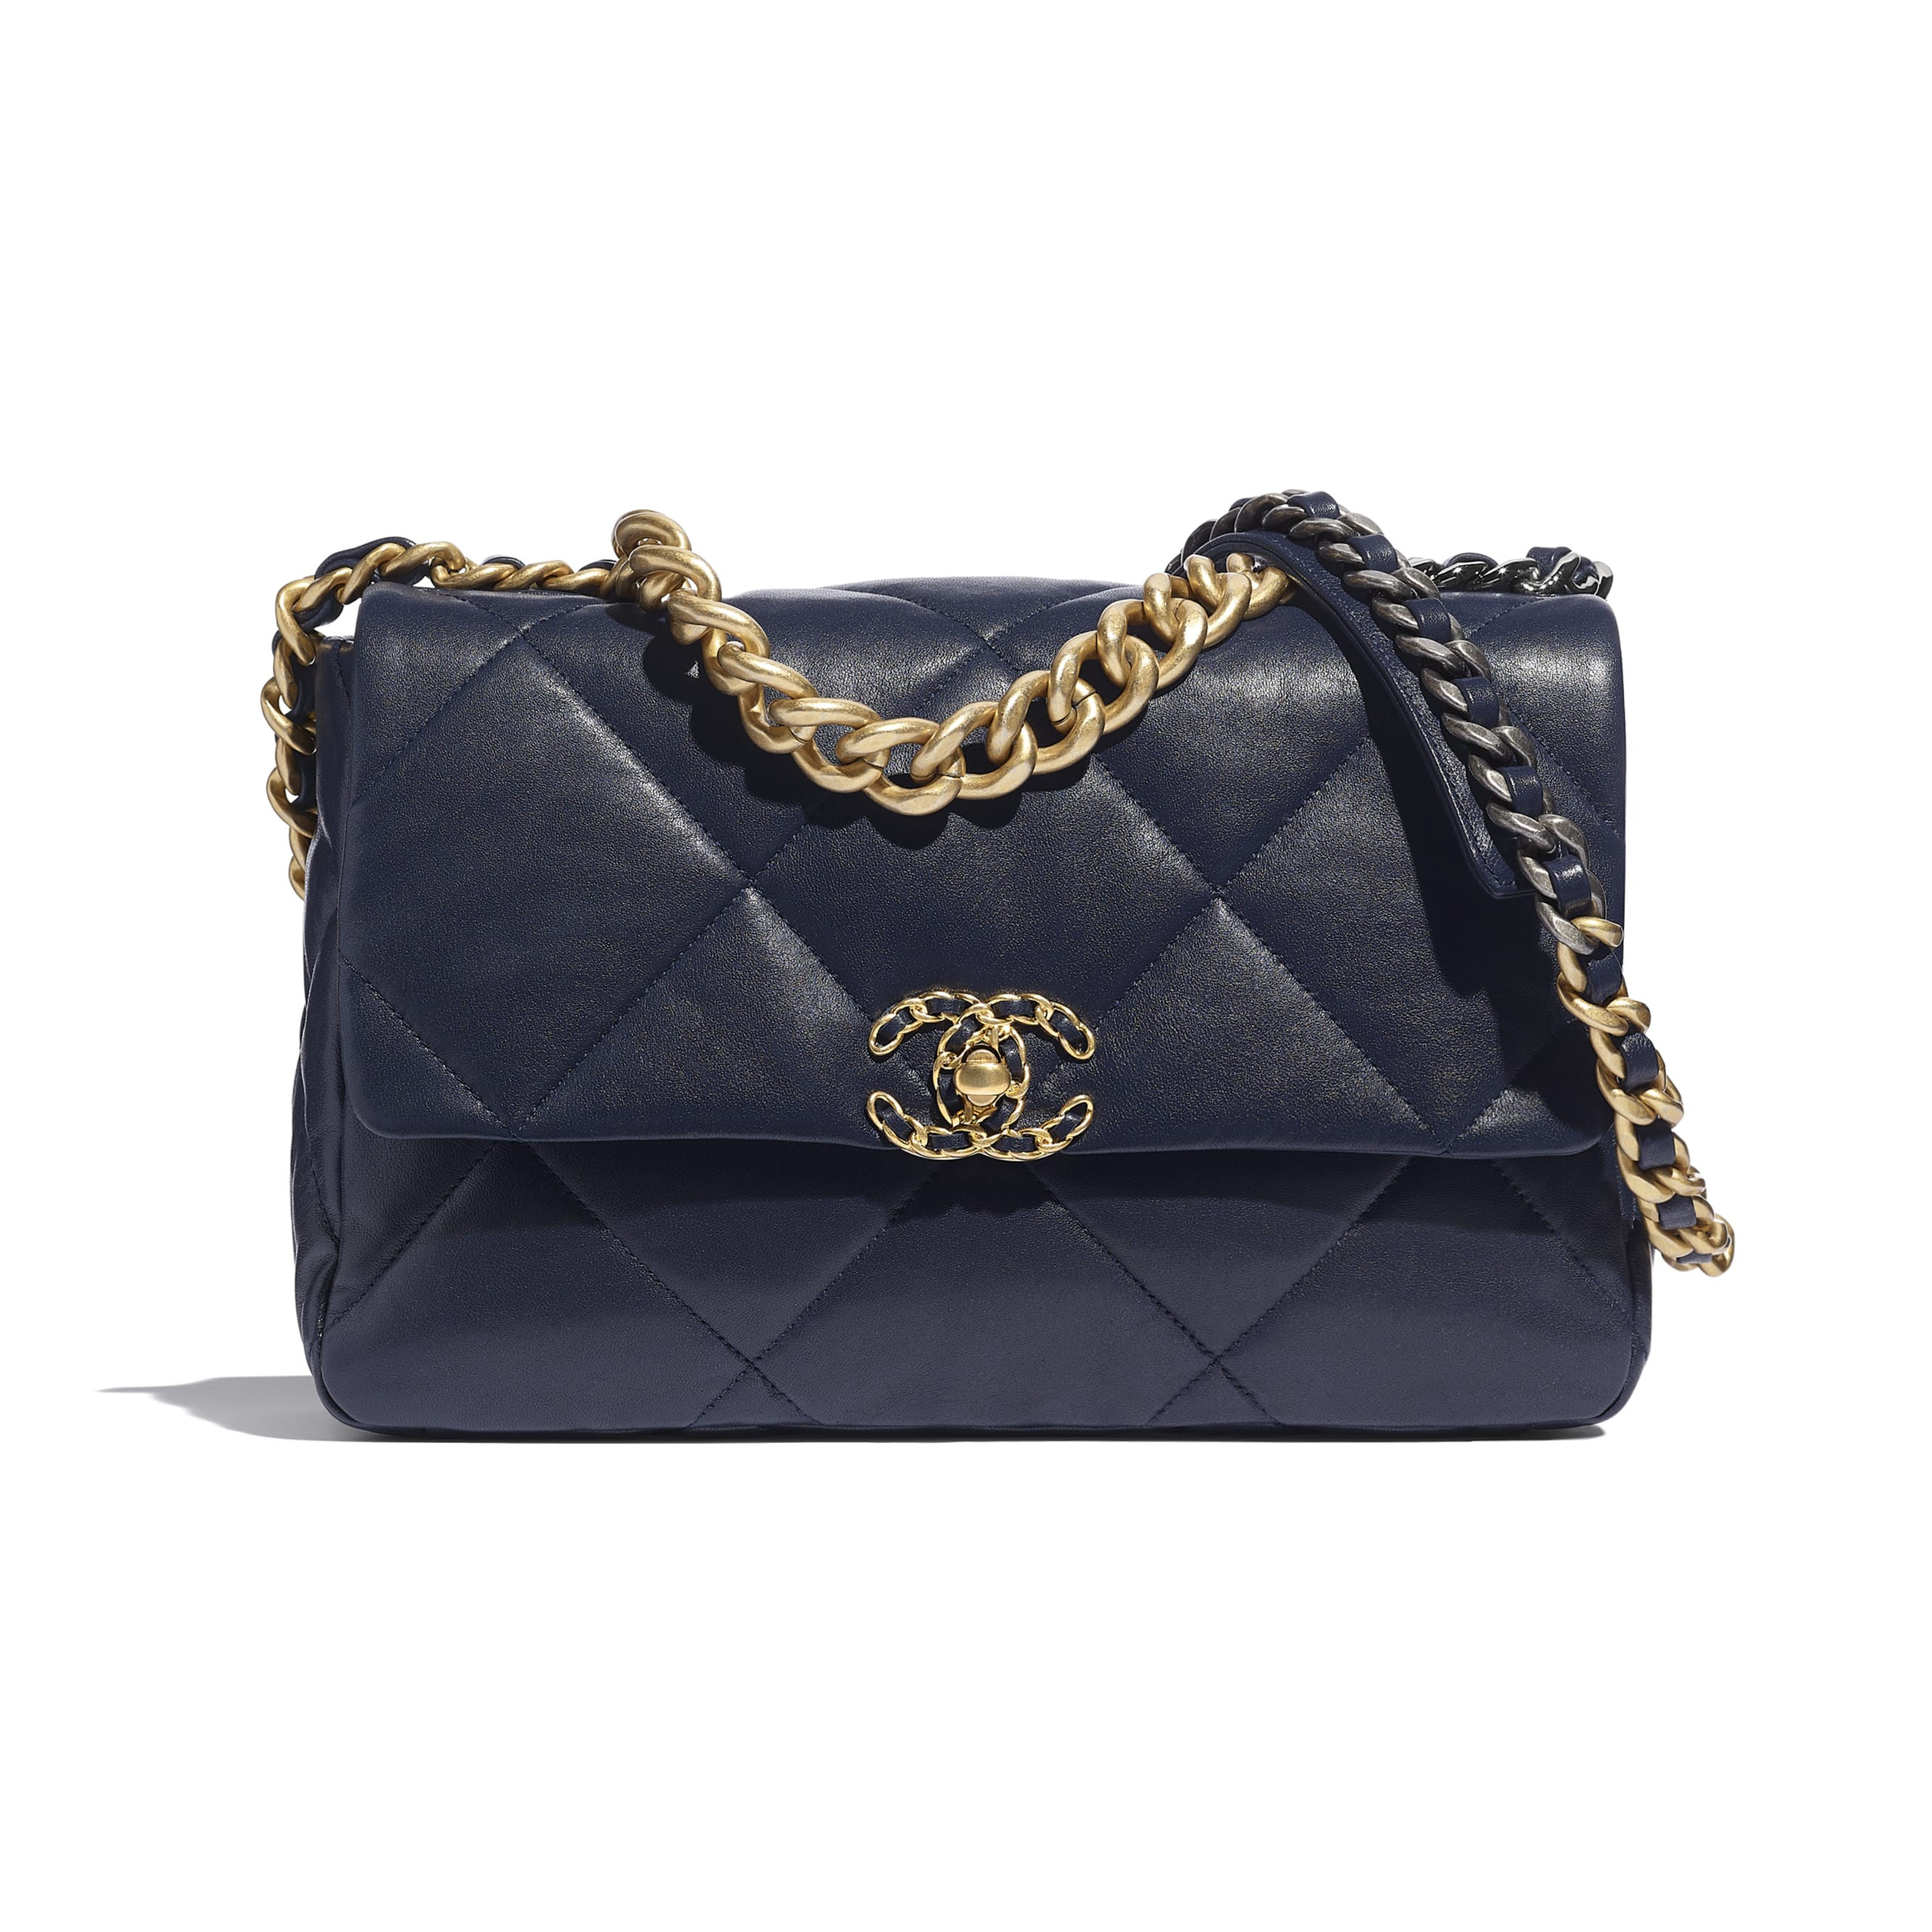 CHANEL 19 Large Flap Bag - Navy Blue - Lambskin, Gold-Tone, Silver-Tone & Ruthenium-Finish Metal - CHANEL - Default view - see standard sized version